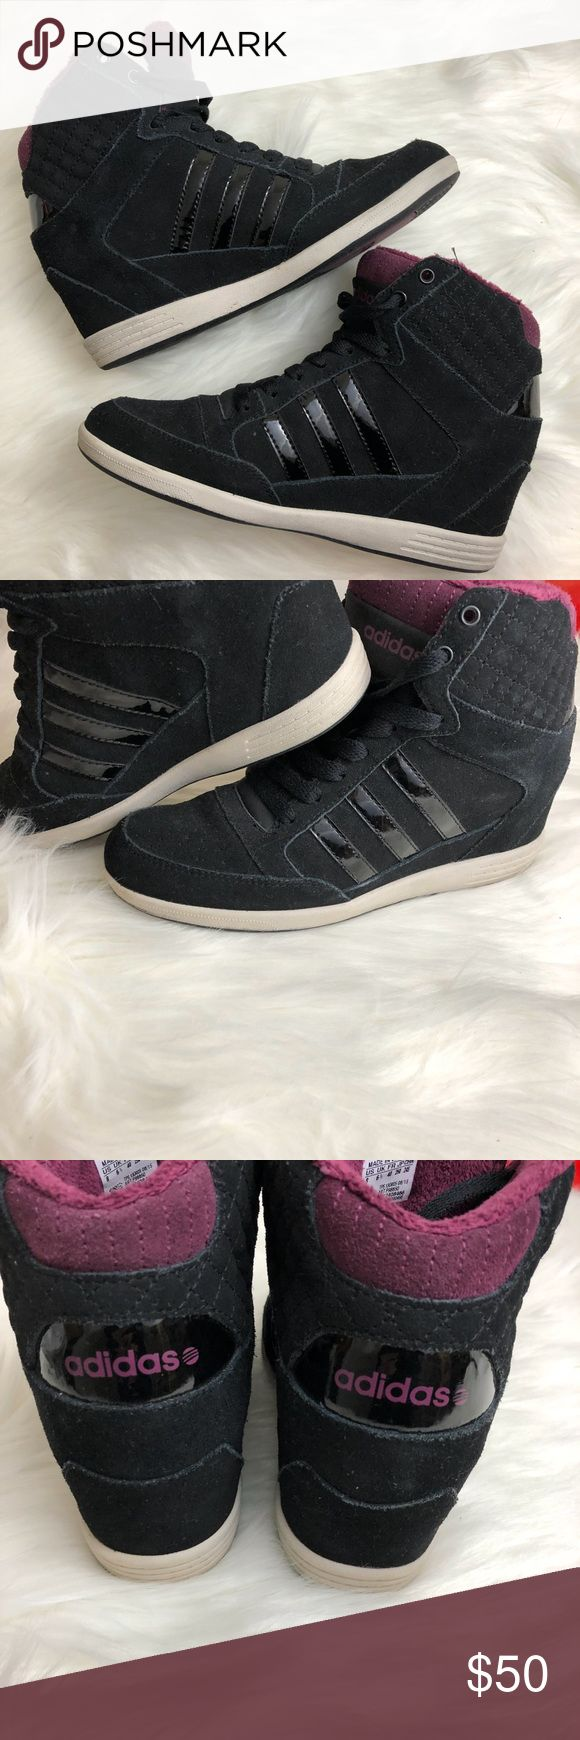 Adidas Neo Label Black Purple Wedge High Top Great used condition, look at photos for wear. Size 8 Neo Label Black with Maroon interior. adidas Shoes Sneakers